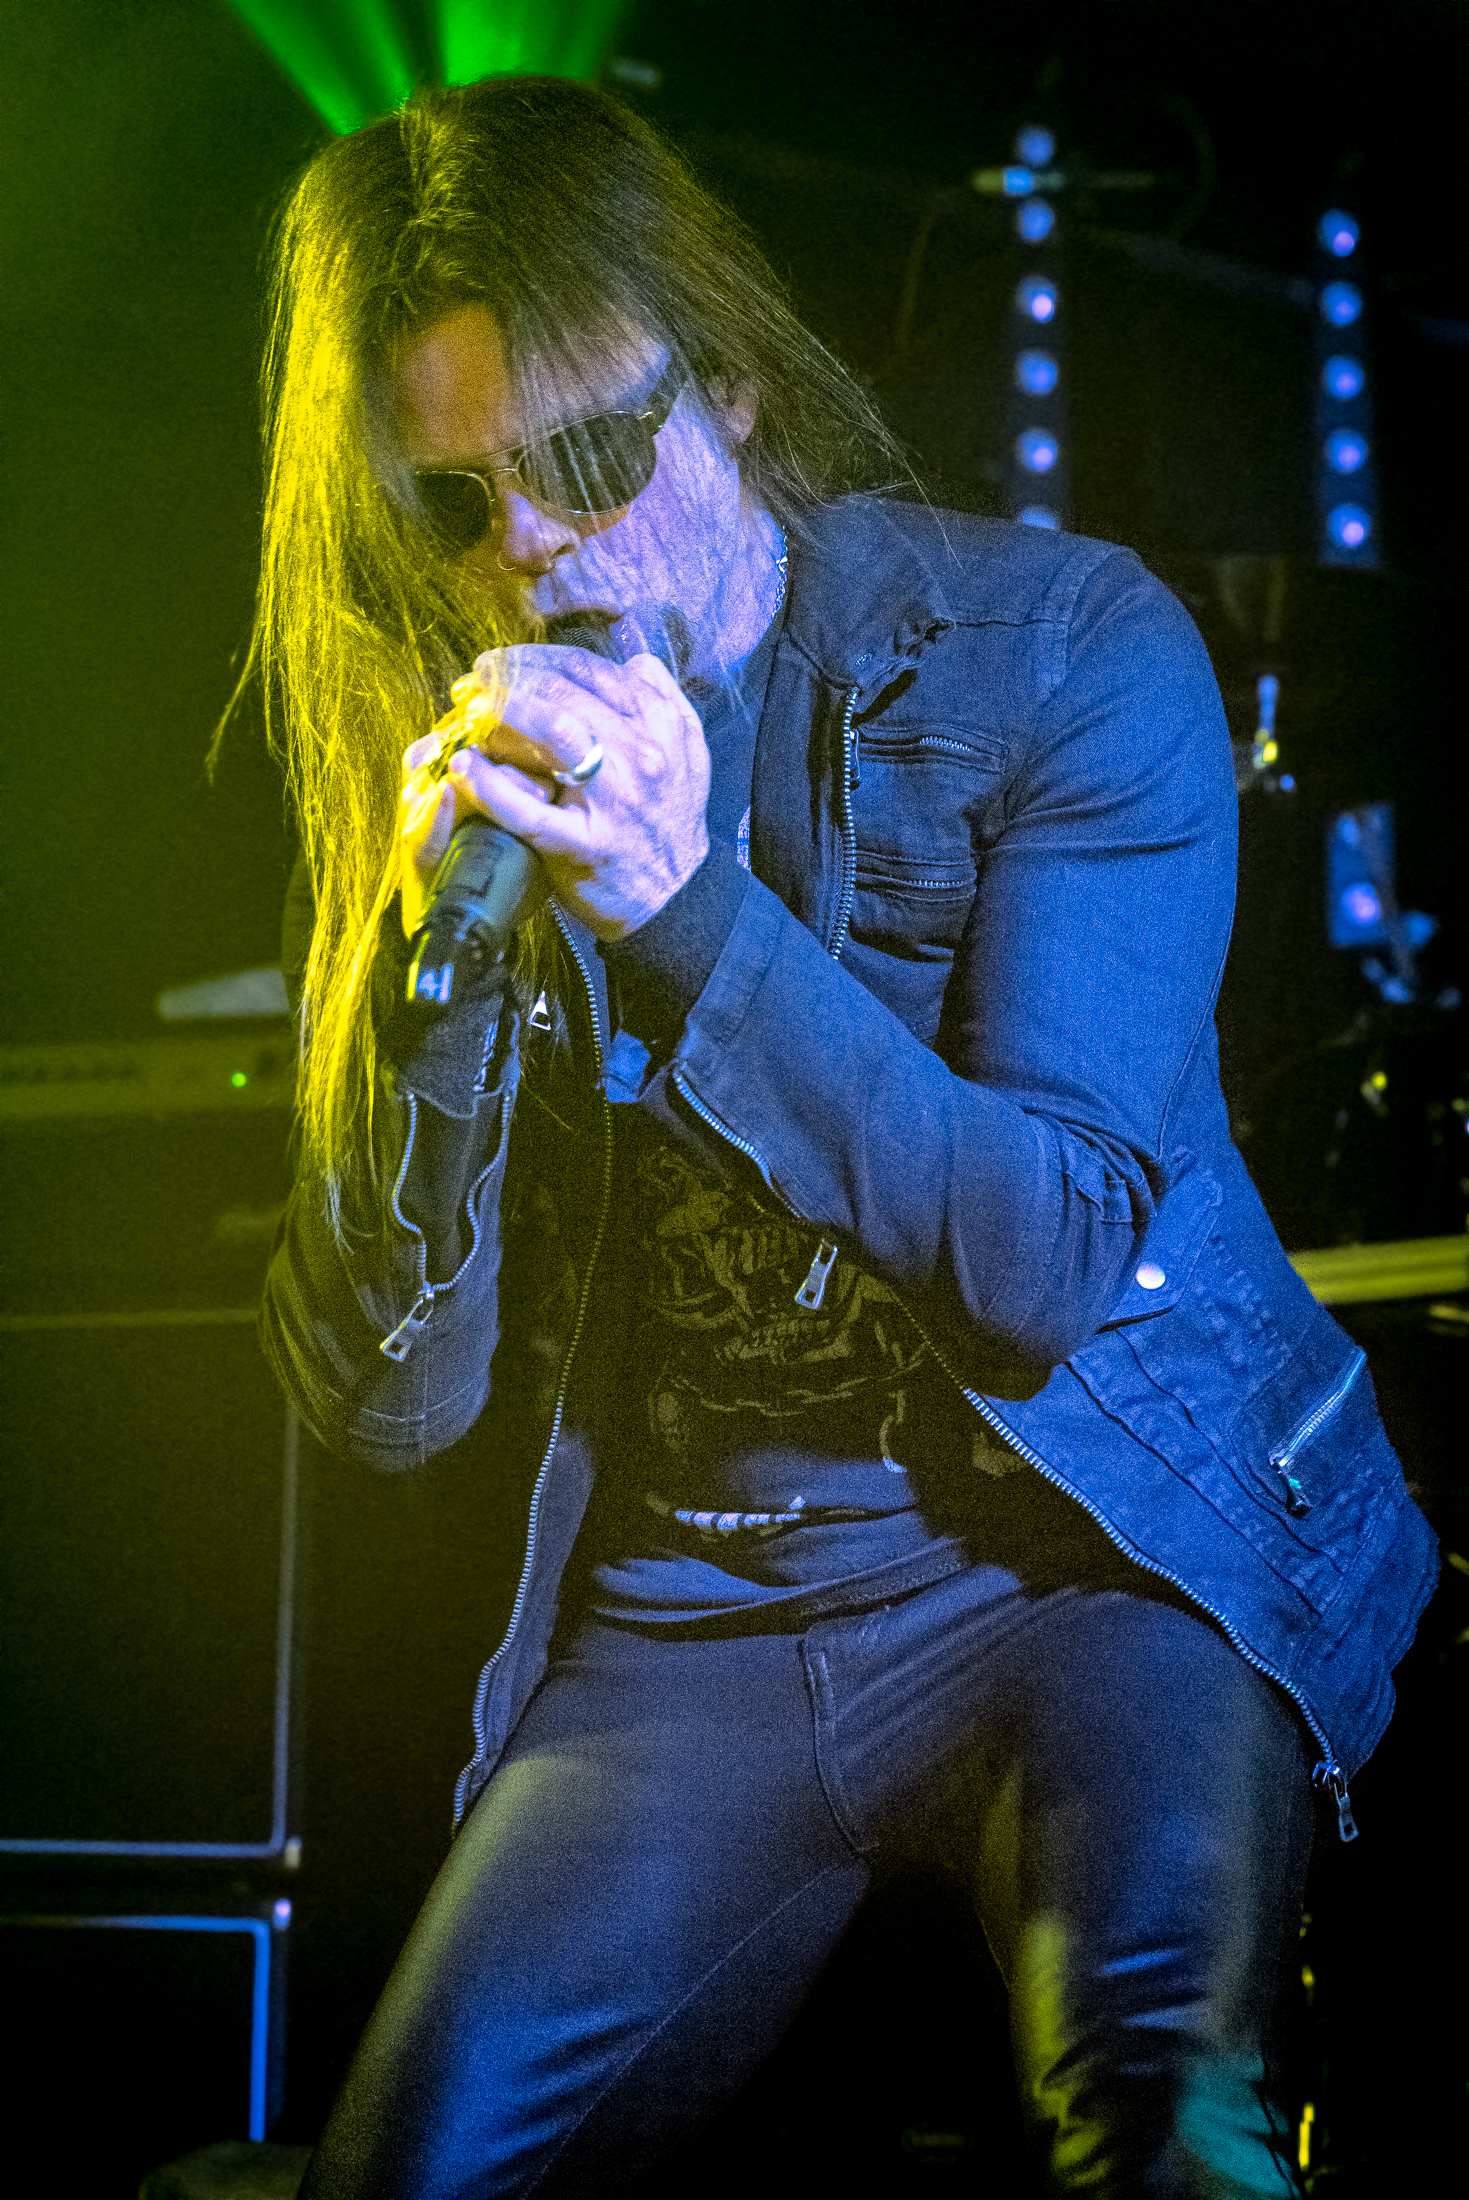 queensryche - melbourne - 2016 - paul tadday photography - 3.jpg